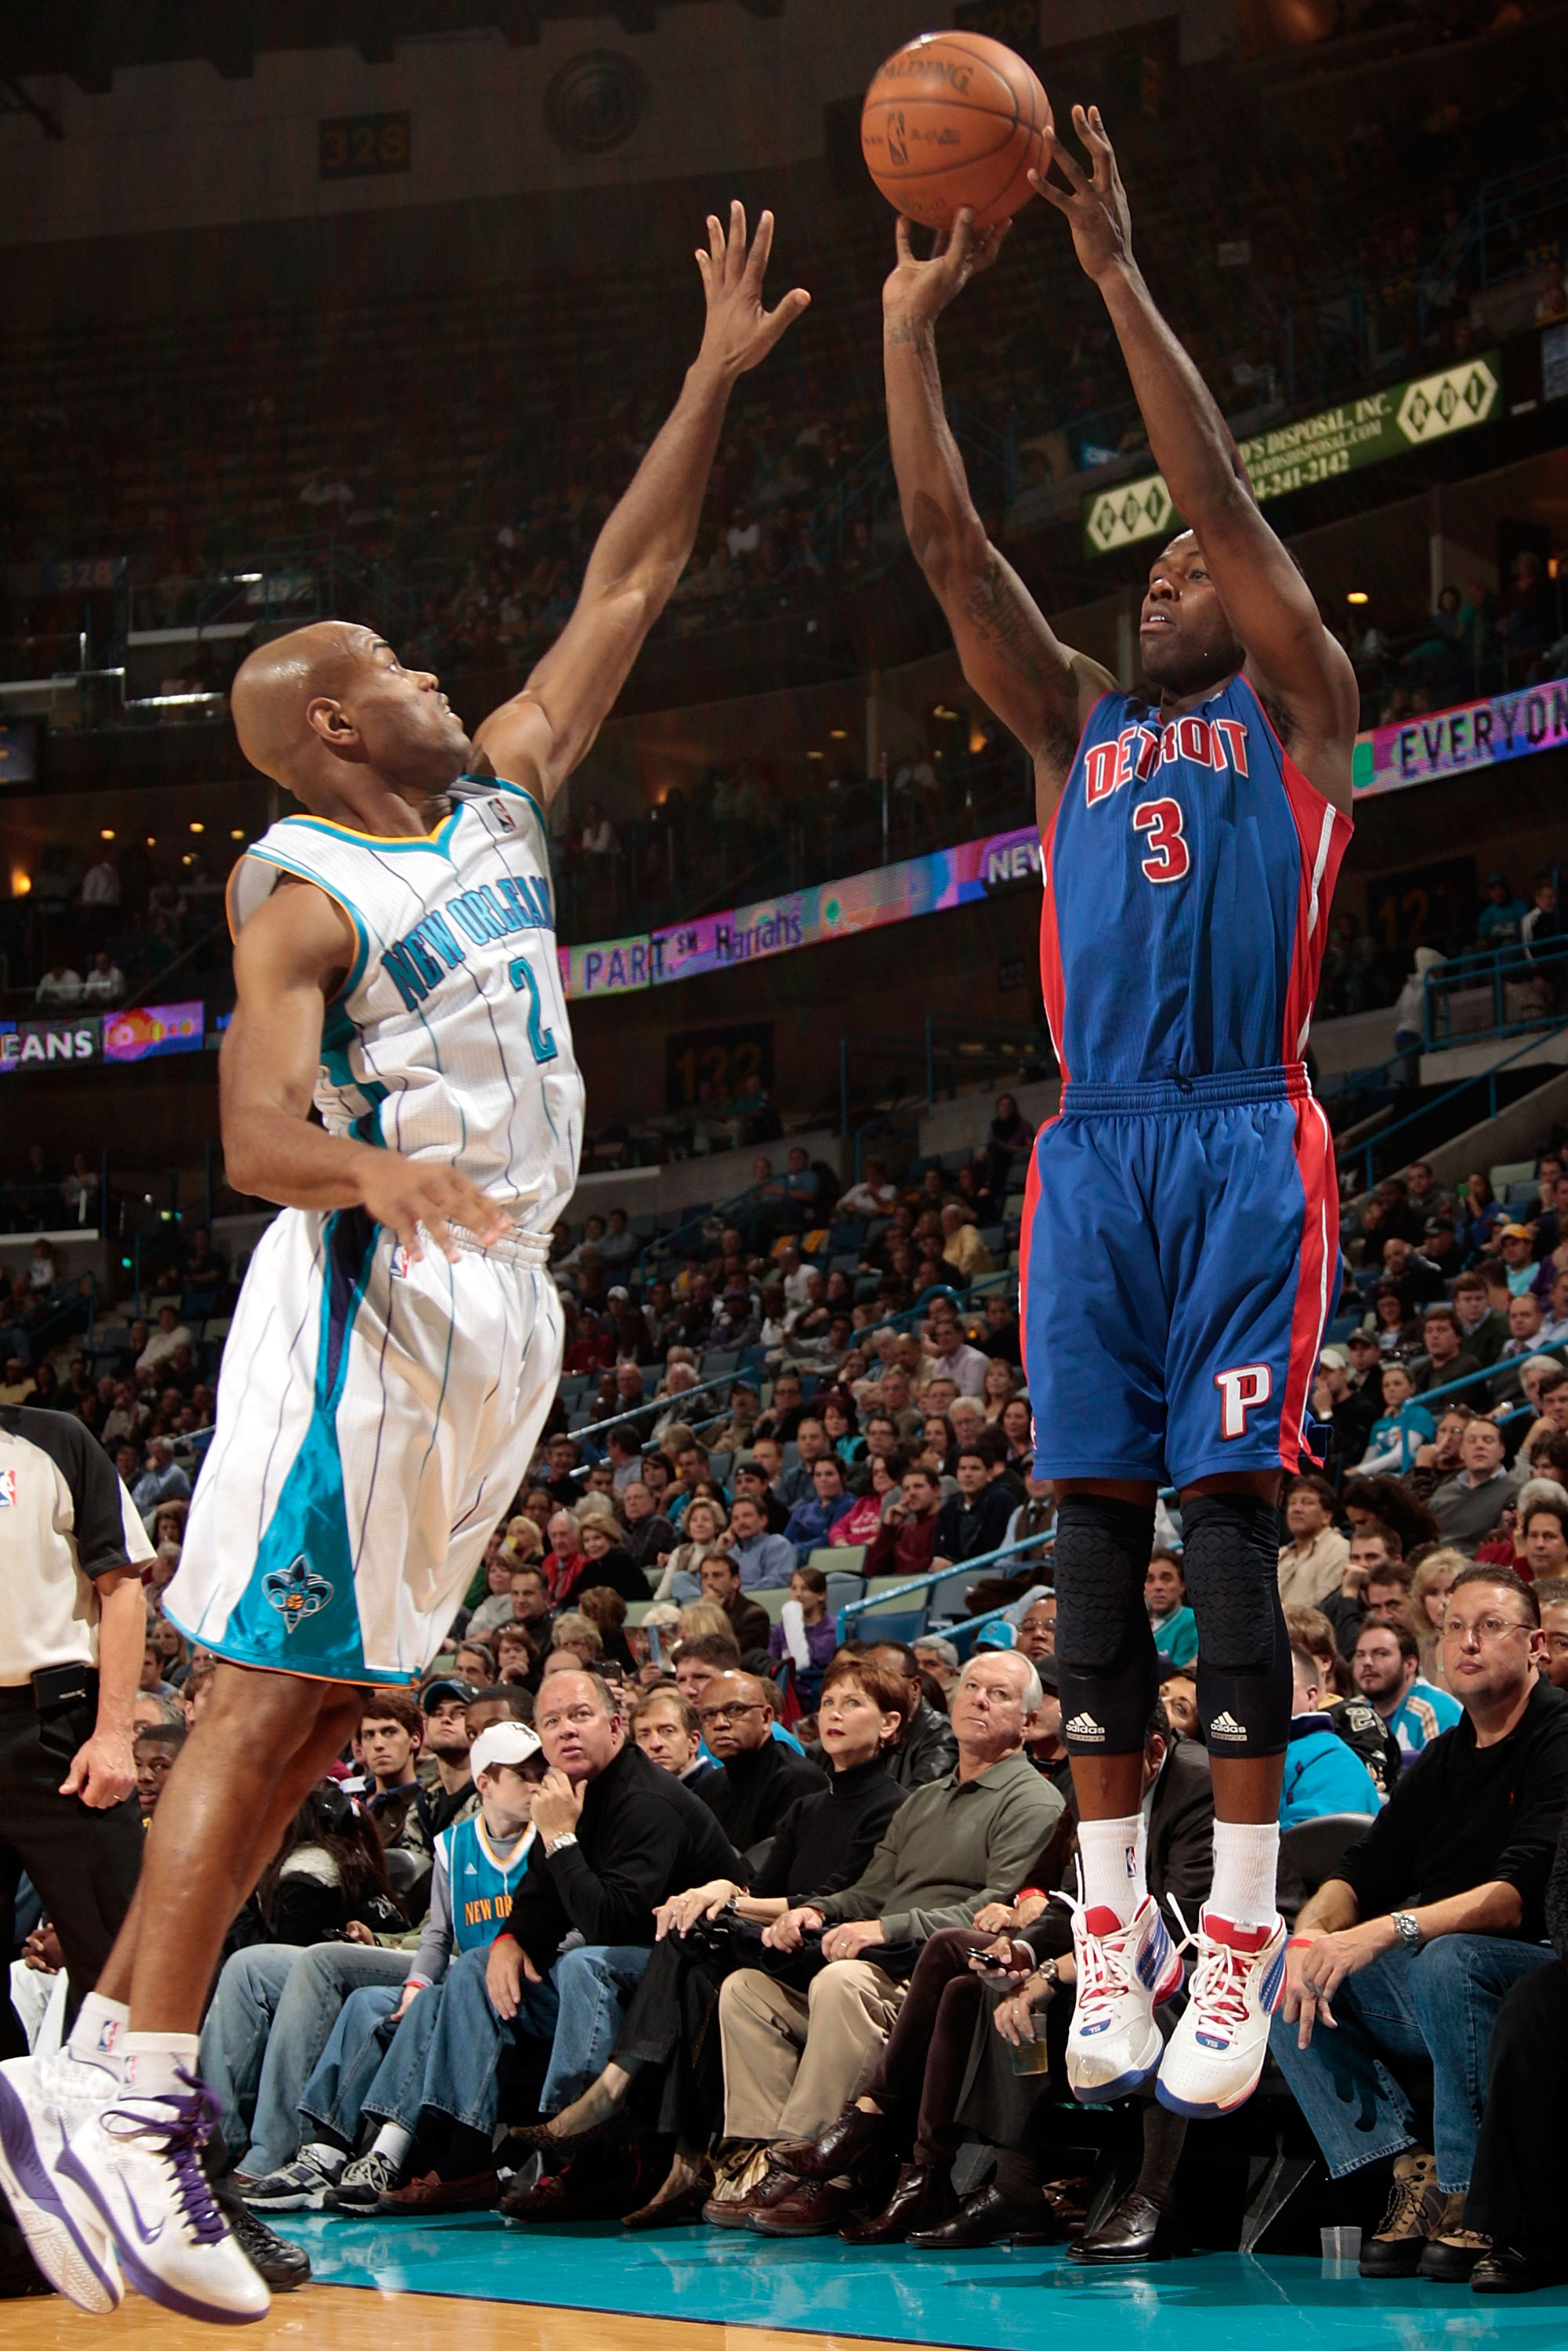 NEW ORLEANS, LA - DECEMBER 08:  Rodney Stuckey #3 of the Detroit Pistons shoots the ball over Jarrett Jack #2 of the New Orleans Hornets at the New Orleans Arena on December 8, 2010 in New Orleans, Louisiana. The Hornets defeated the Pistons 93-74.   NOTE